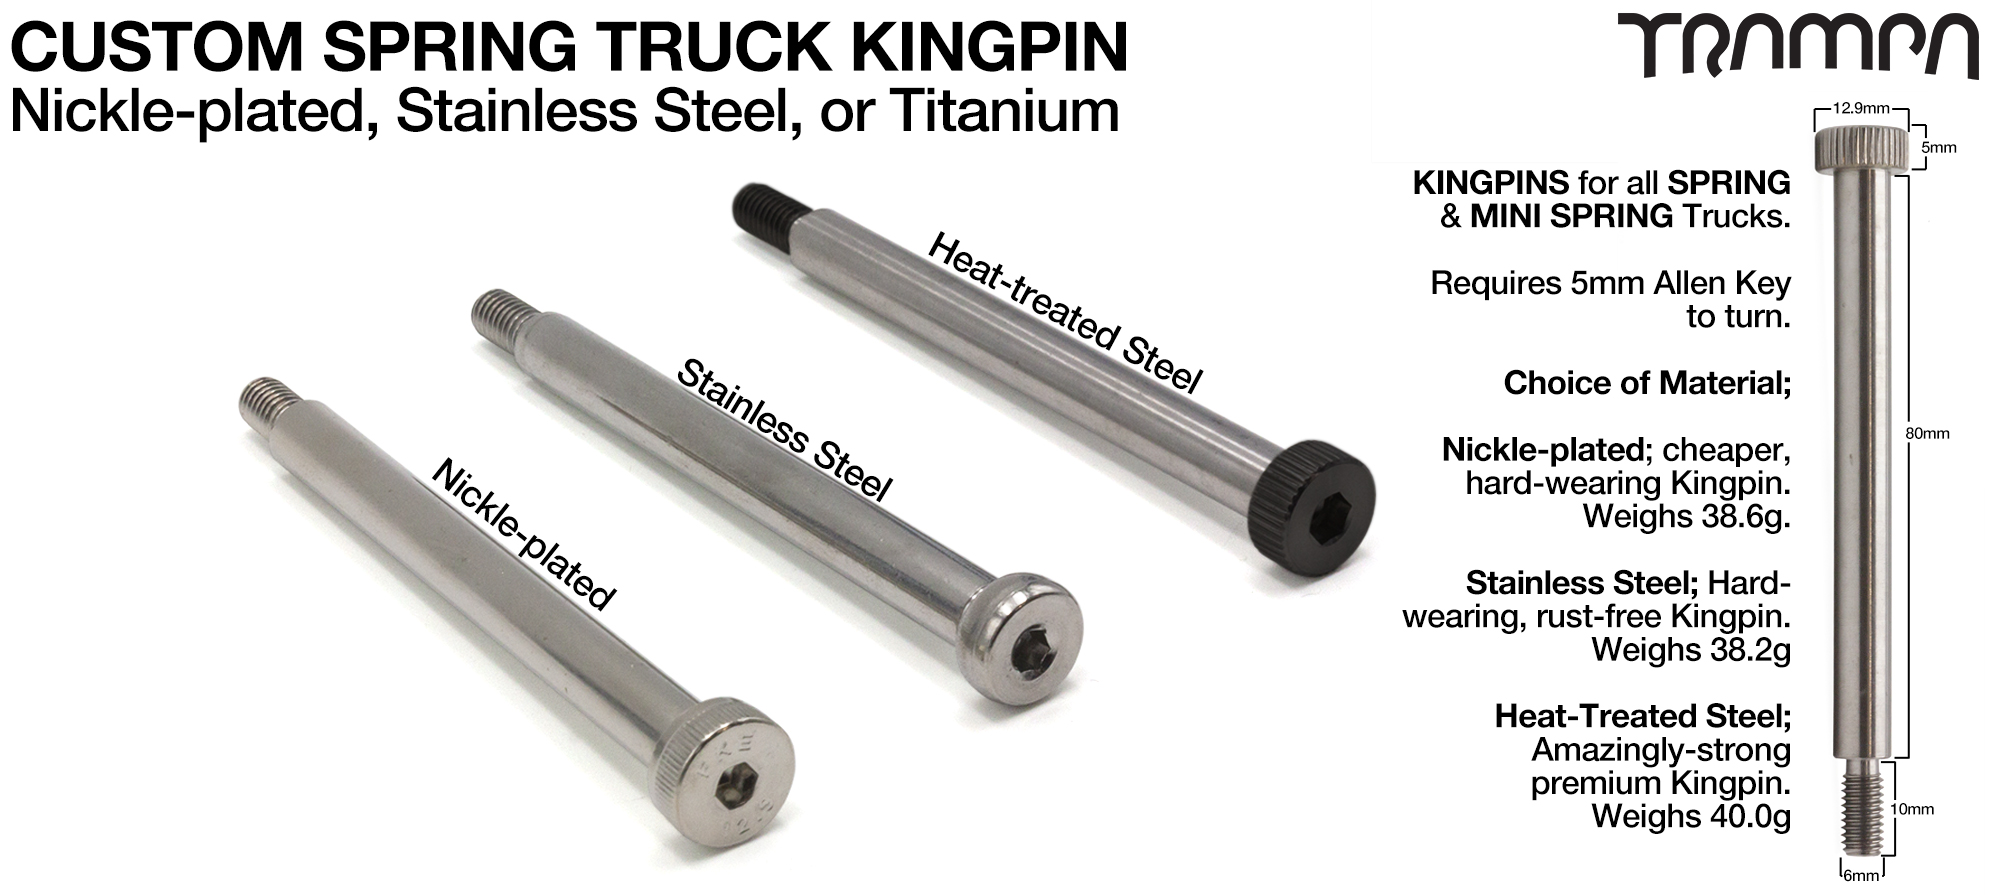 Custom Kingpin for Spring Trucks - M8x80mm Nikle Plated, Stainless Steel or TITANIUM